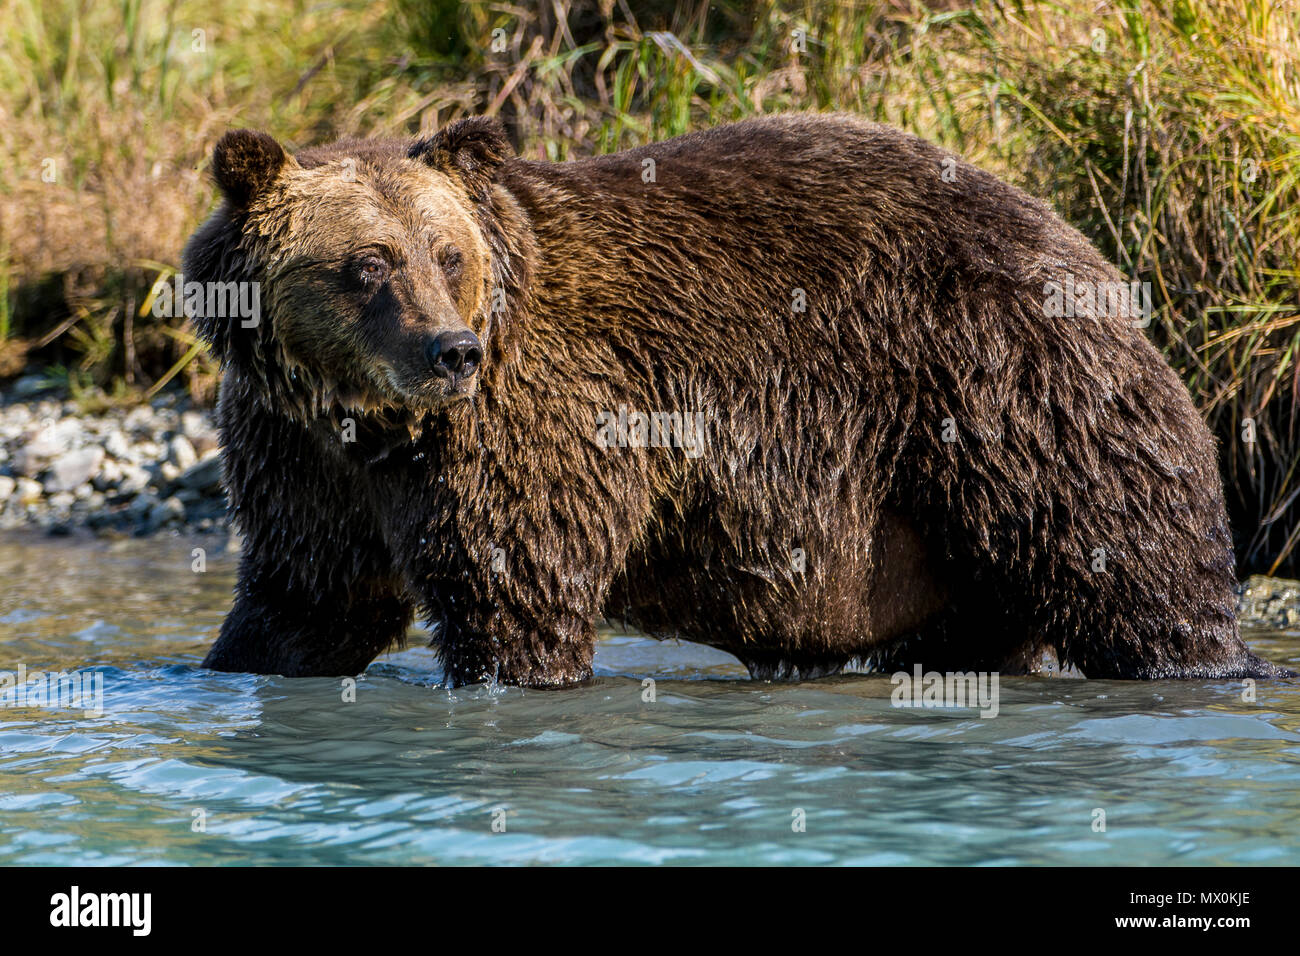 Grizzly (brown) bear (Ursus arctos) at Crescent Lake, Lake Clark National Park and Preserve, Alaska, United States of America, North America - Stock Image